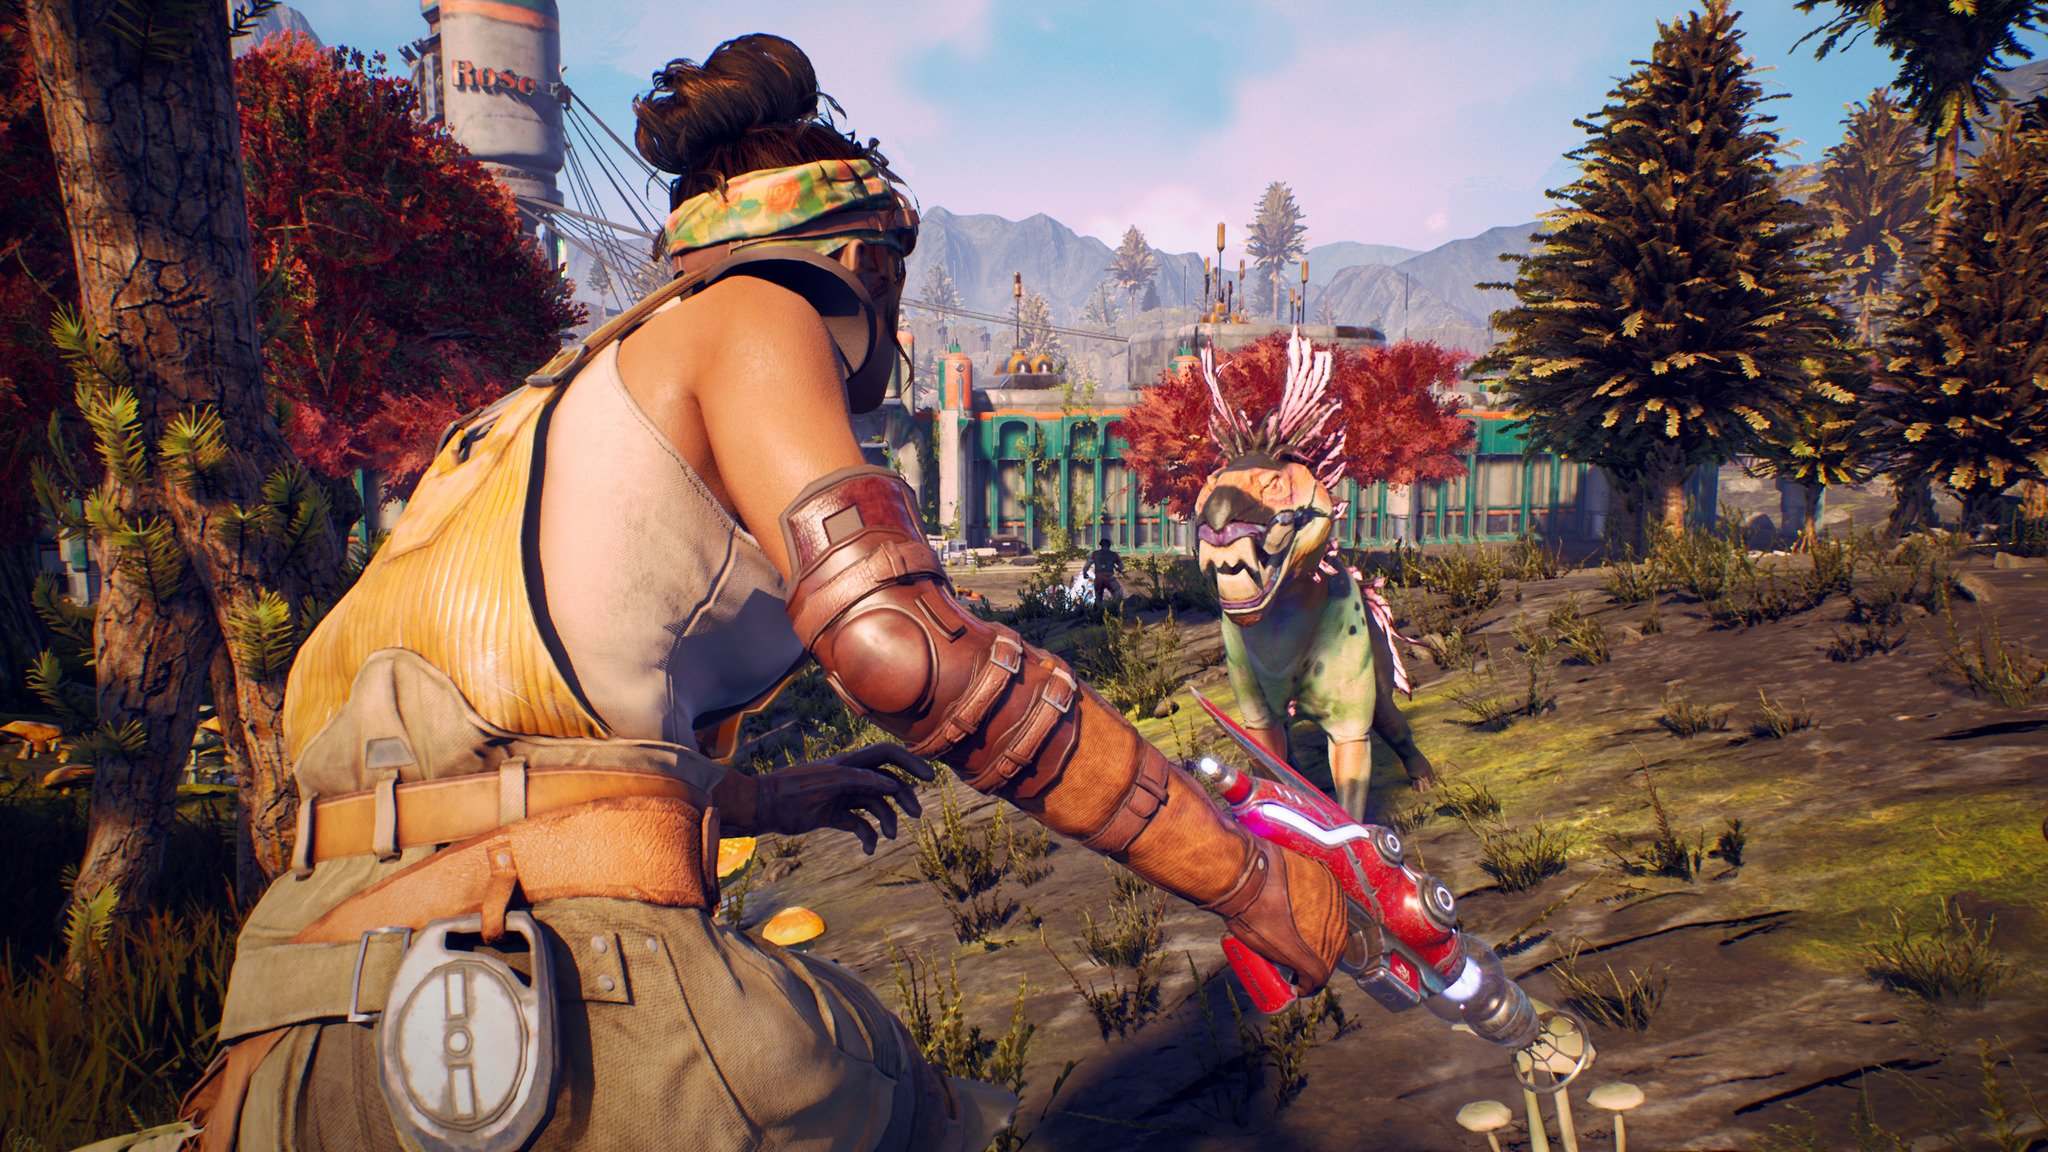 The second Outer Worlds expansion will launch before April - Video Games Chronicle